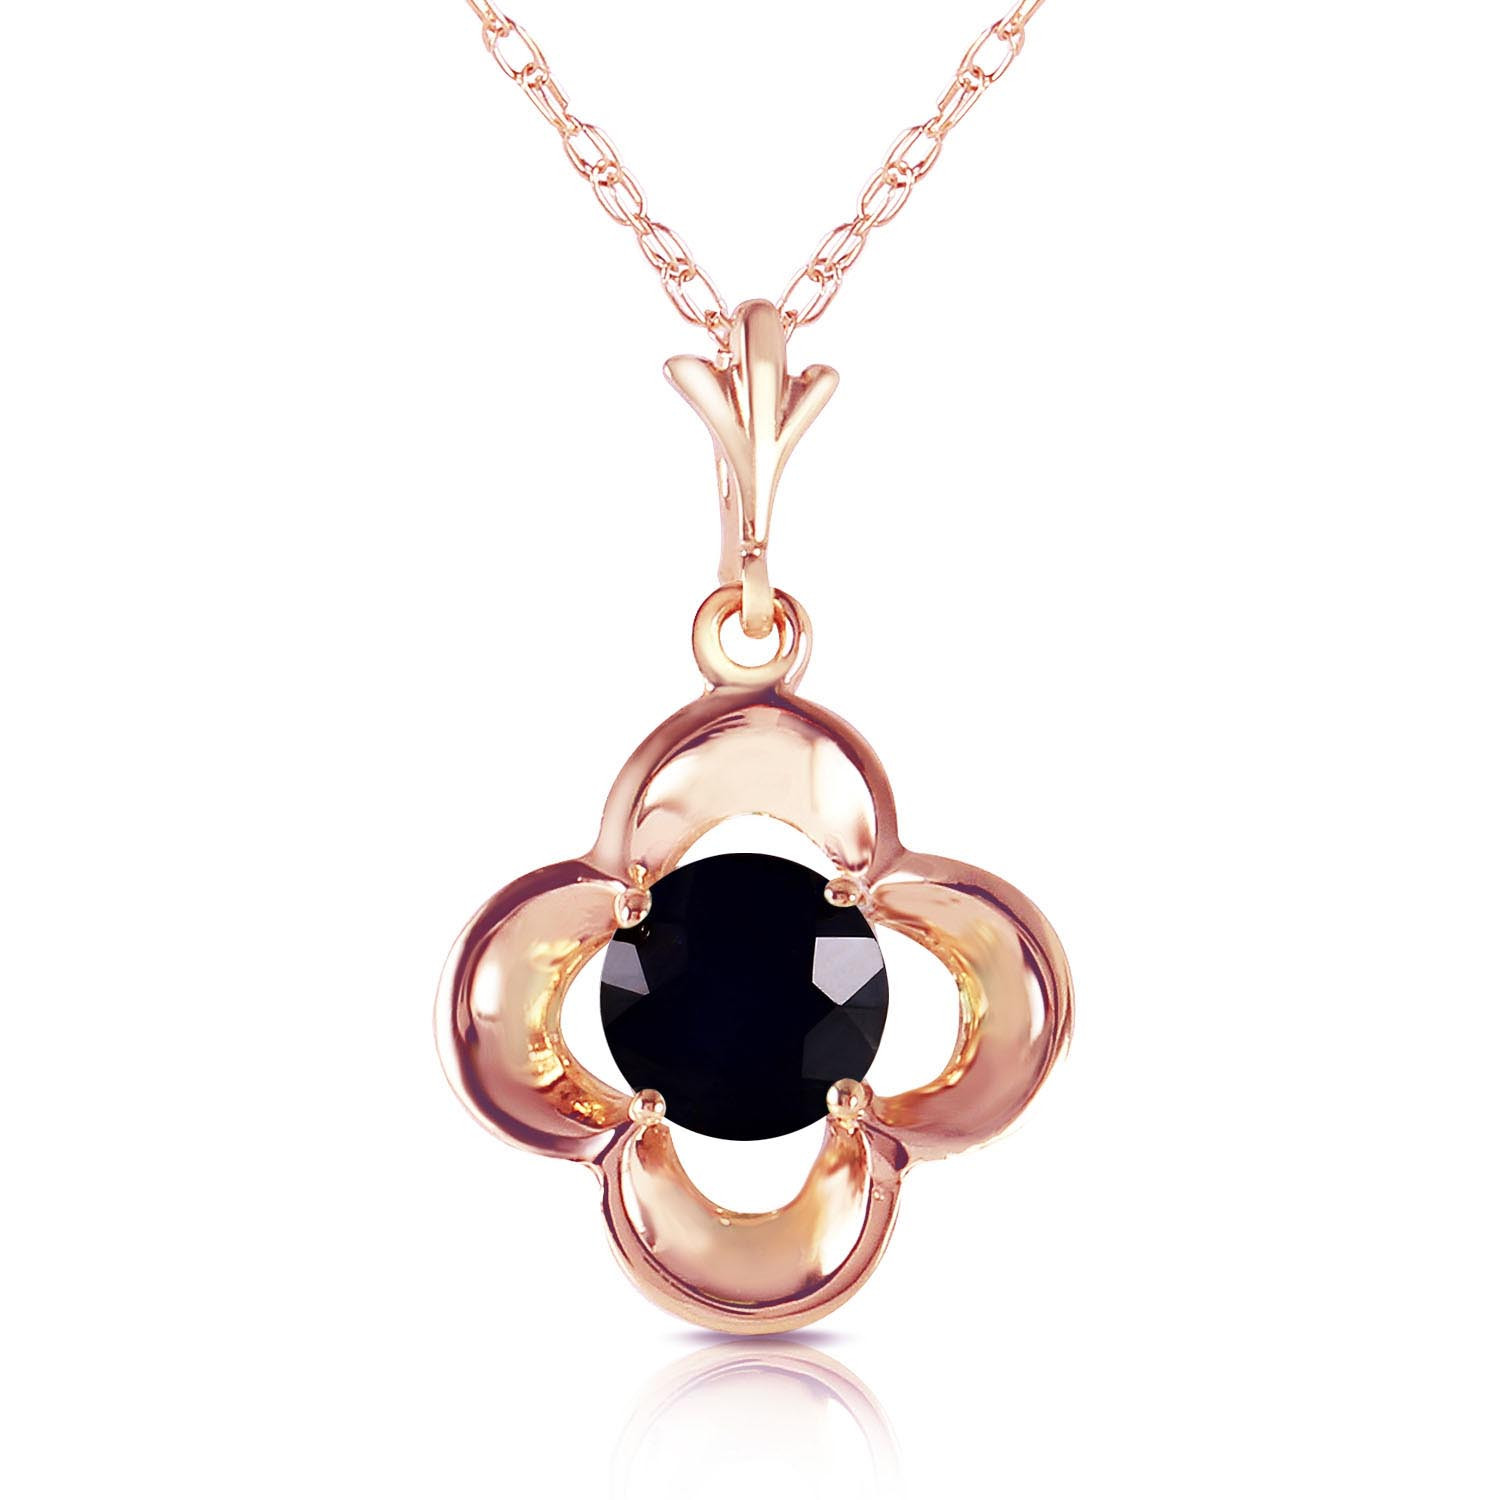 Round cut diamond pendant necklace 05 ct in 9ct rose gold 5178r round cut diamond pendant necklace 05 ct in 9ct rose gold aloadofball Gallery